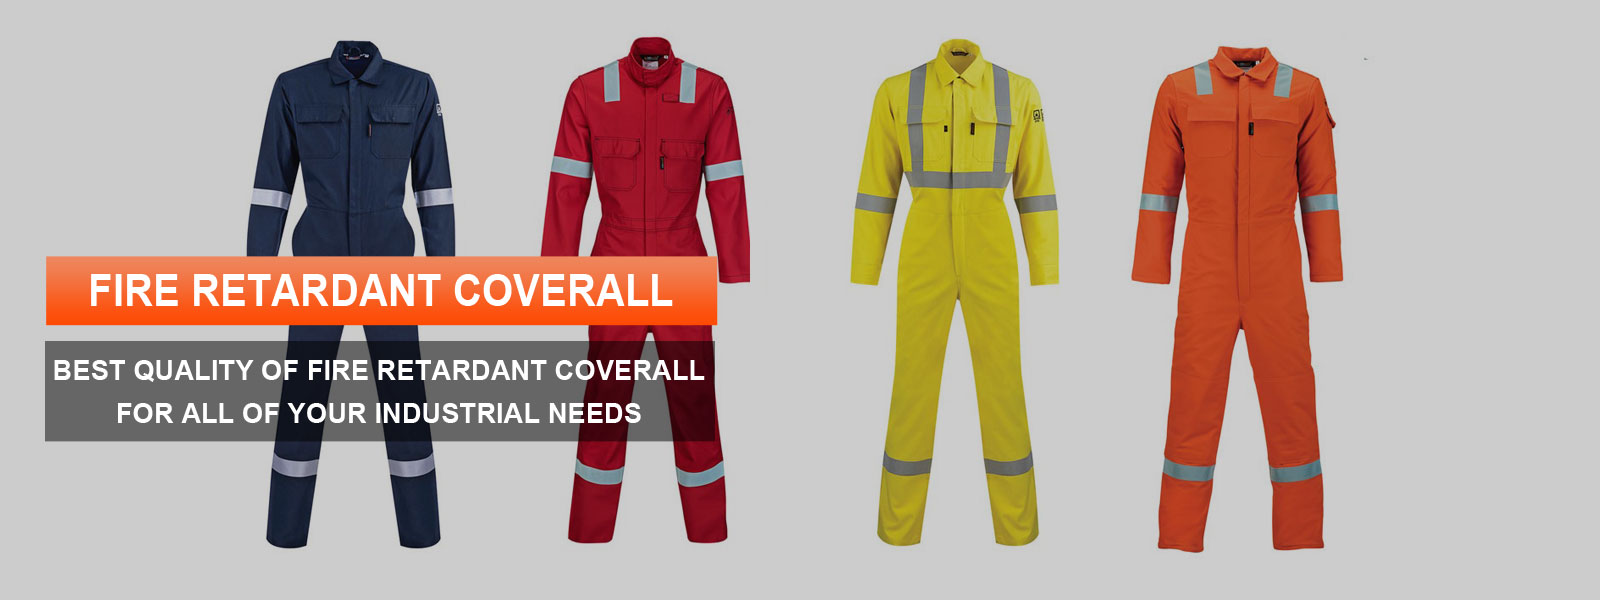 Fire Retardant Coverall Manufacturers in Grenada